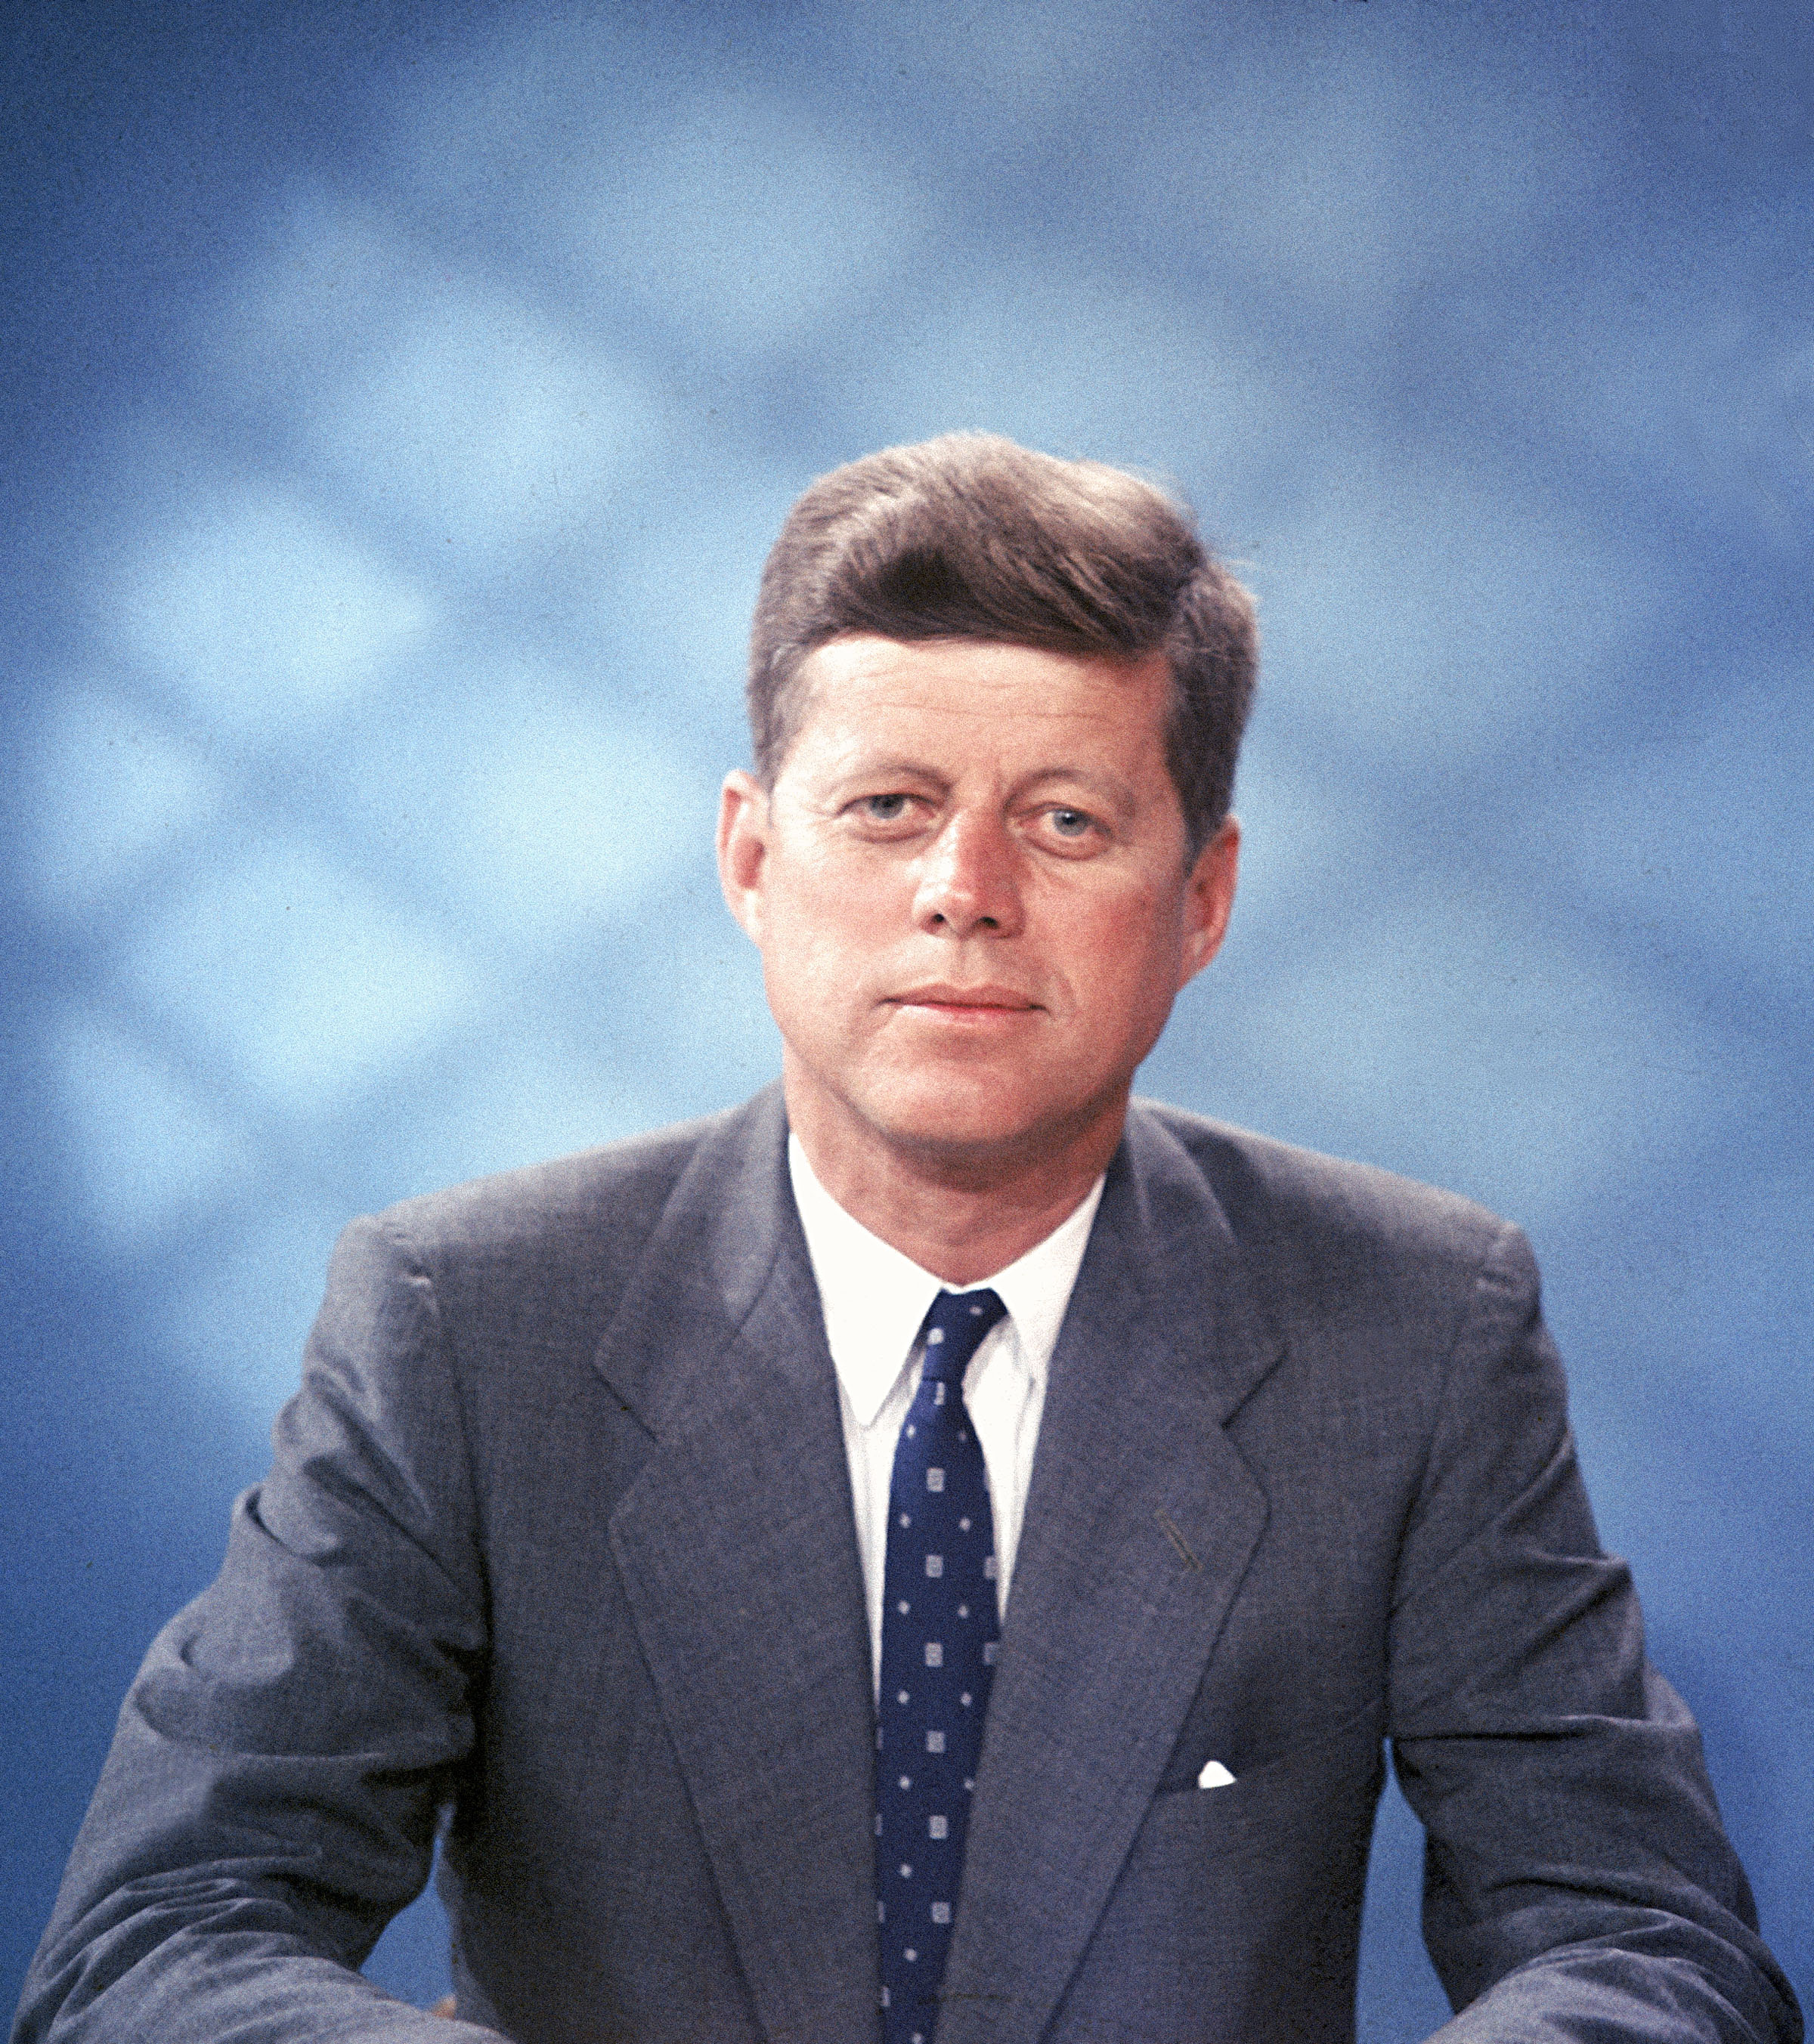 """a biography of john f kennedy a president of the united states In the 1960 campaign, lyndon b johnson was elected vice president as john f kennedy's running mate on november 22, 1963, when kennedy was assassinated, johnson was sworn in as the 36th united states president, with a vision to build """"a great society"""" for the american people."""